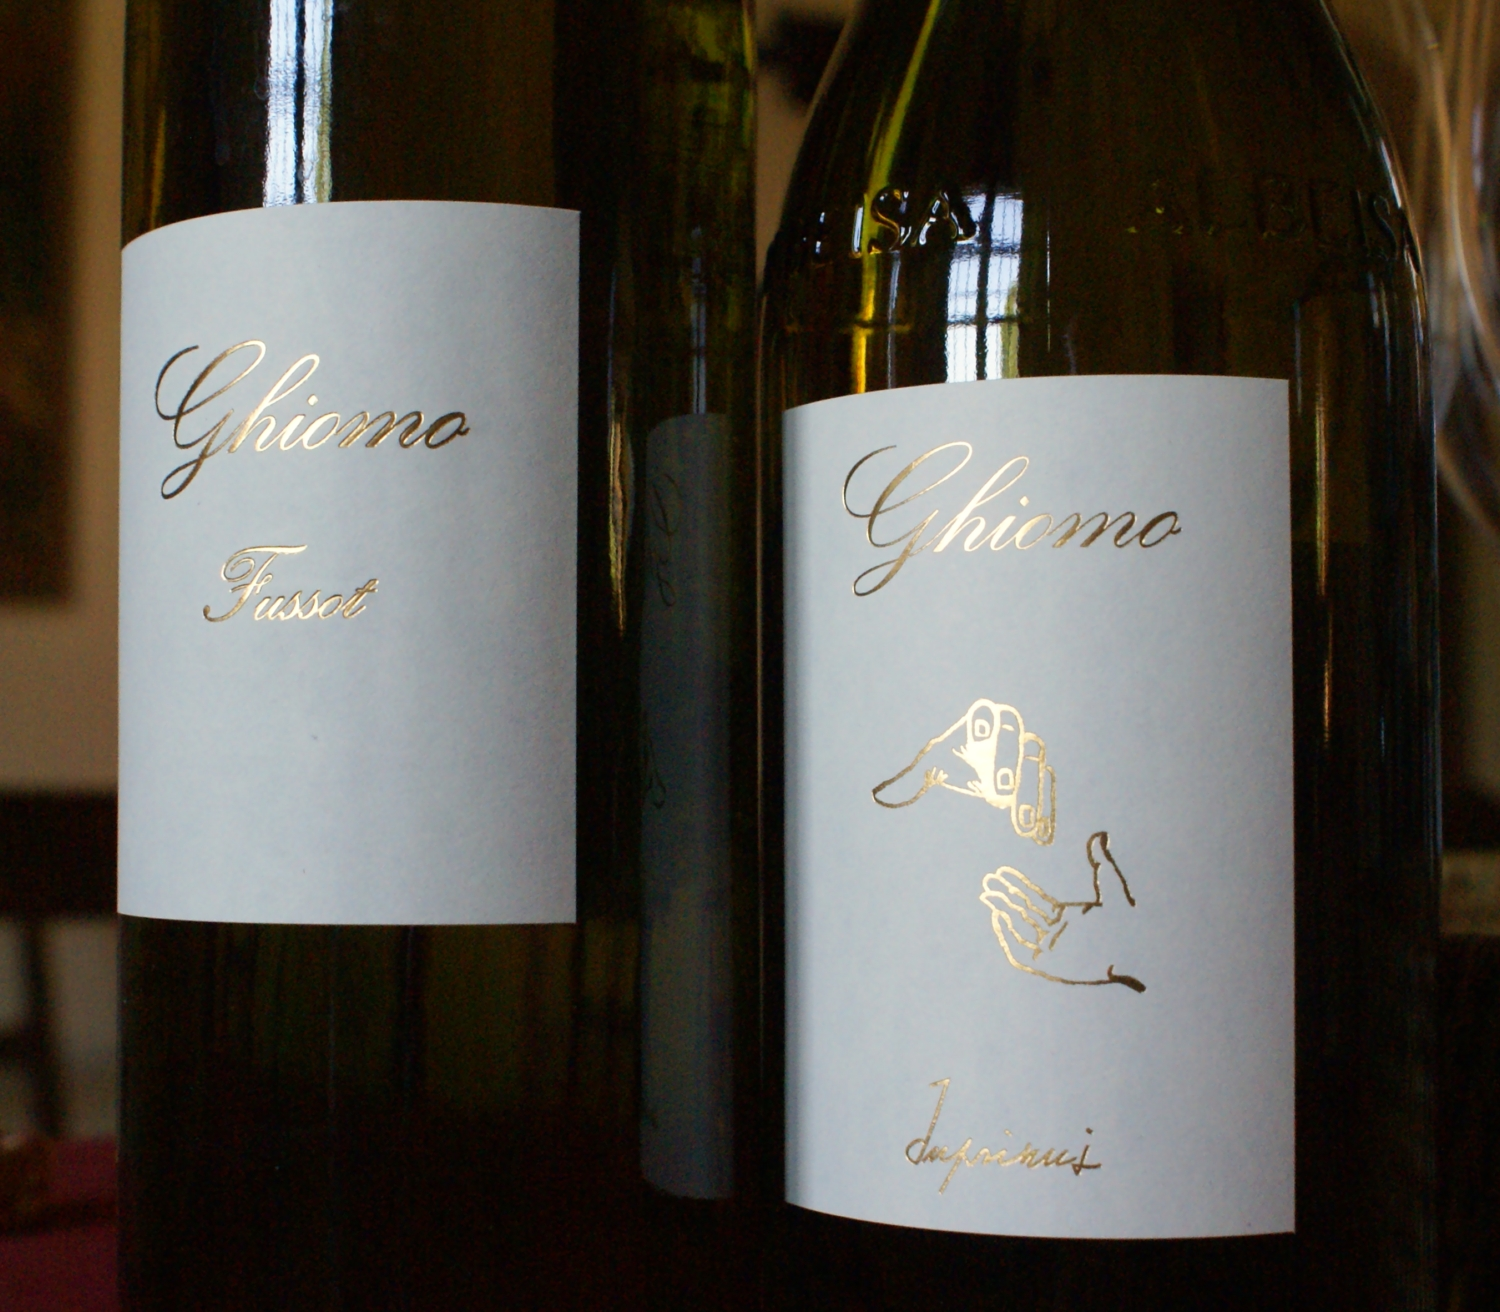 The best Arneis money can buy: Ghiomo's Fussot and ambitious Inprimis.